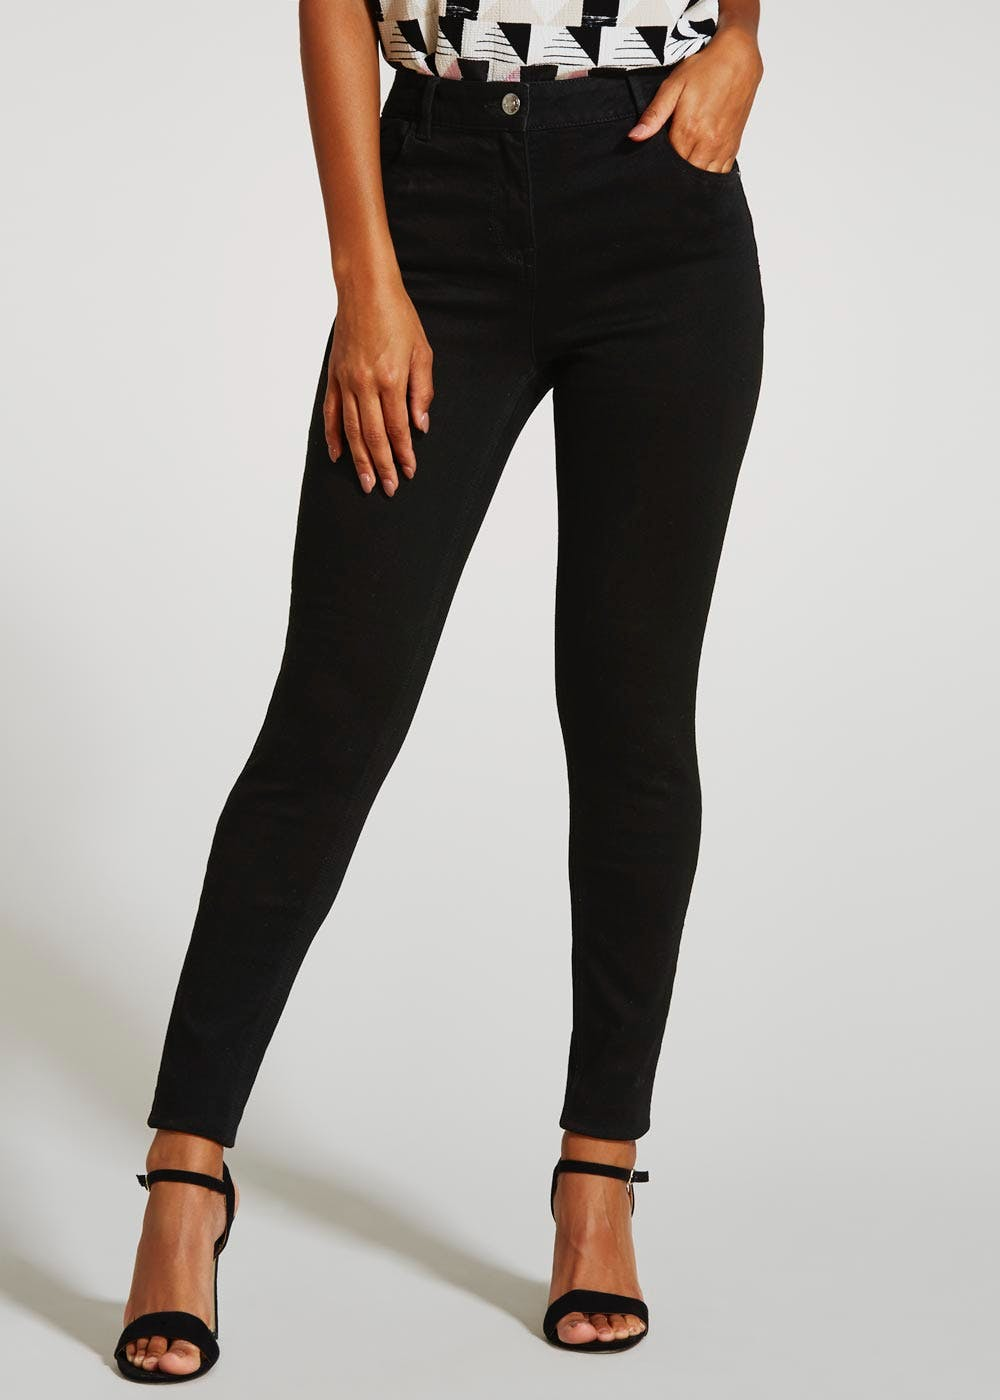 dacd38e06e4d2 April Super Skinny Jeans – Black – Matalan